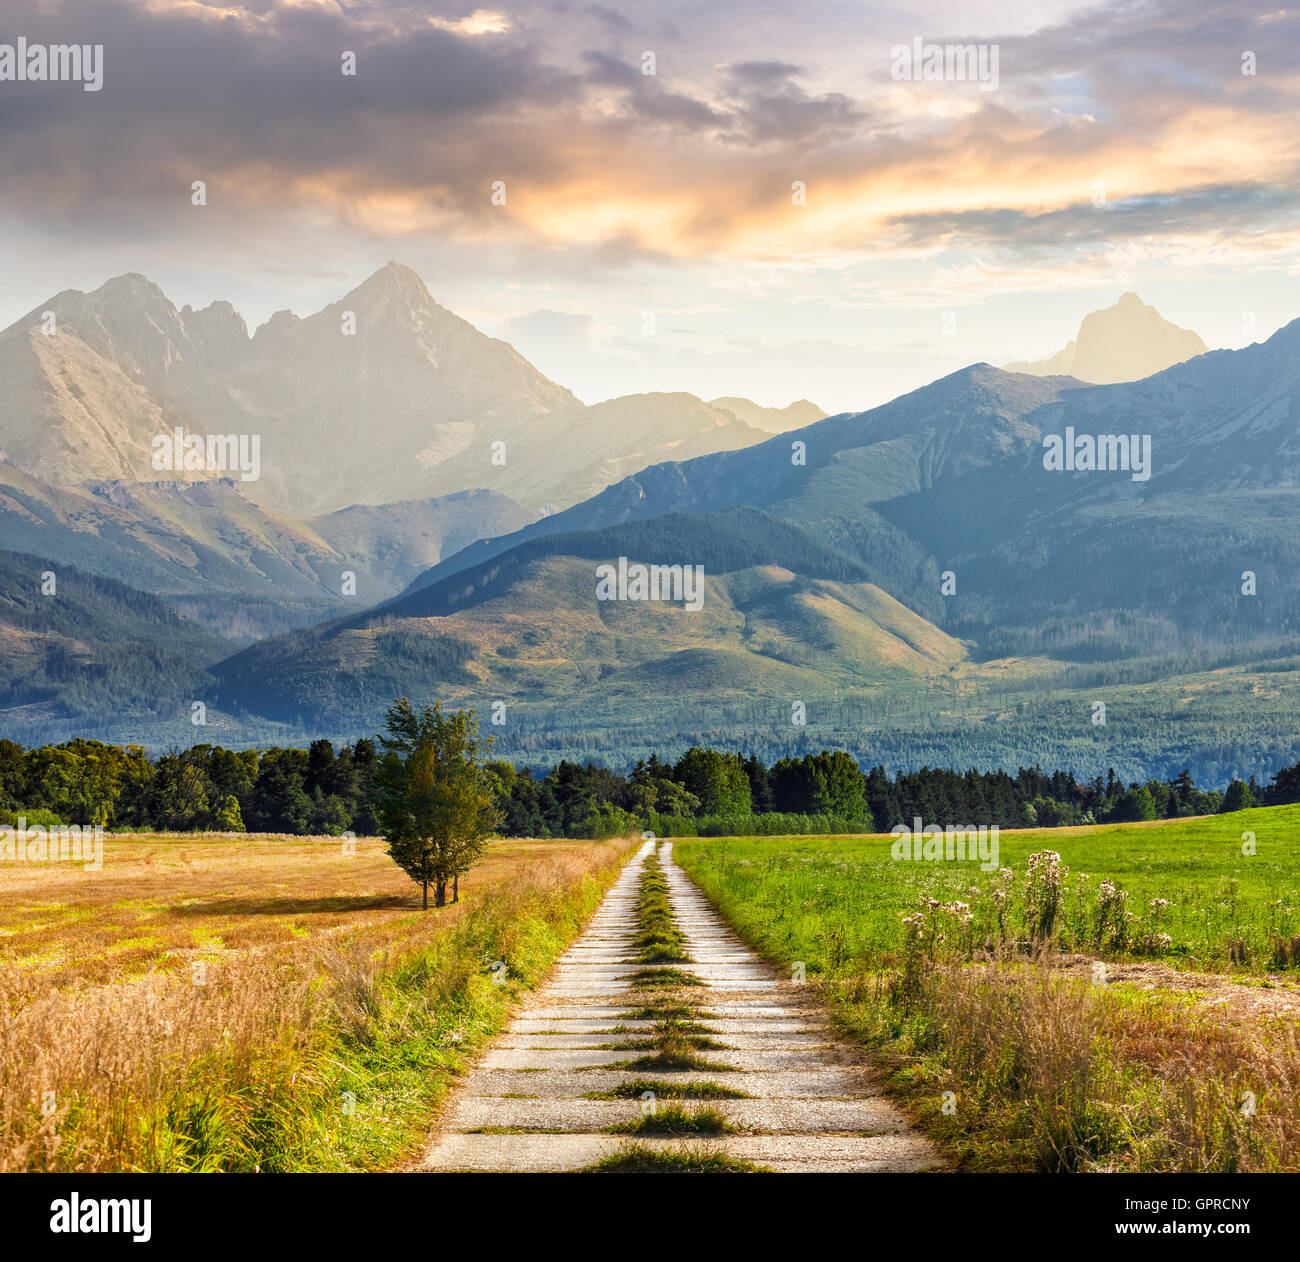 Composite Landscape image. Lonely trees near path through rural green fields to rocky peaks of mountains in evening - Stock Image